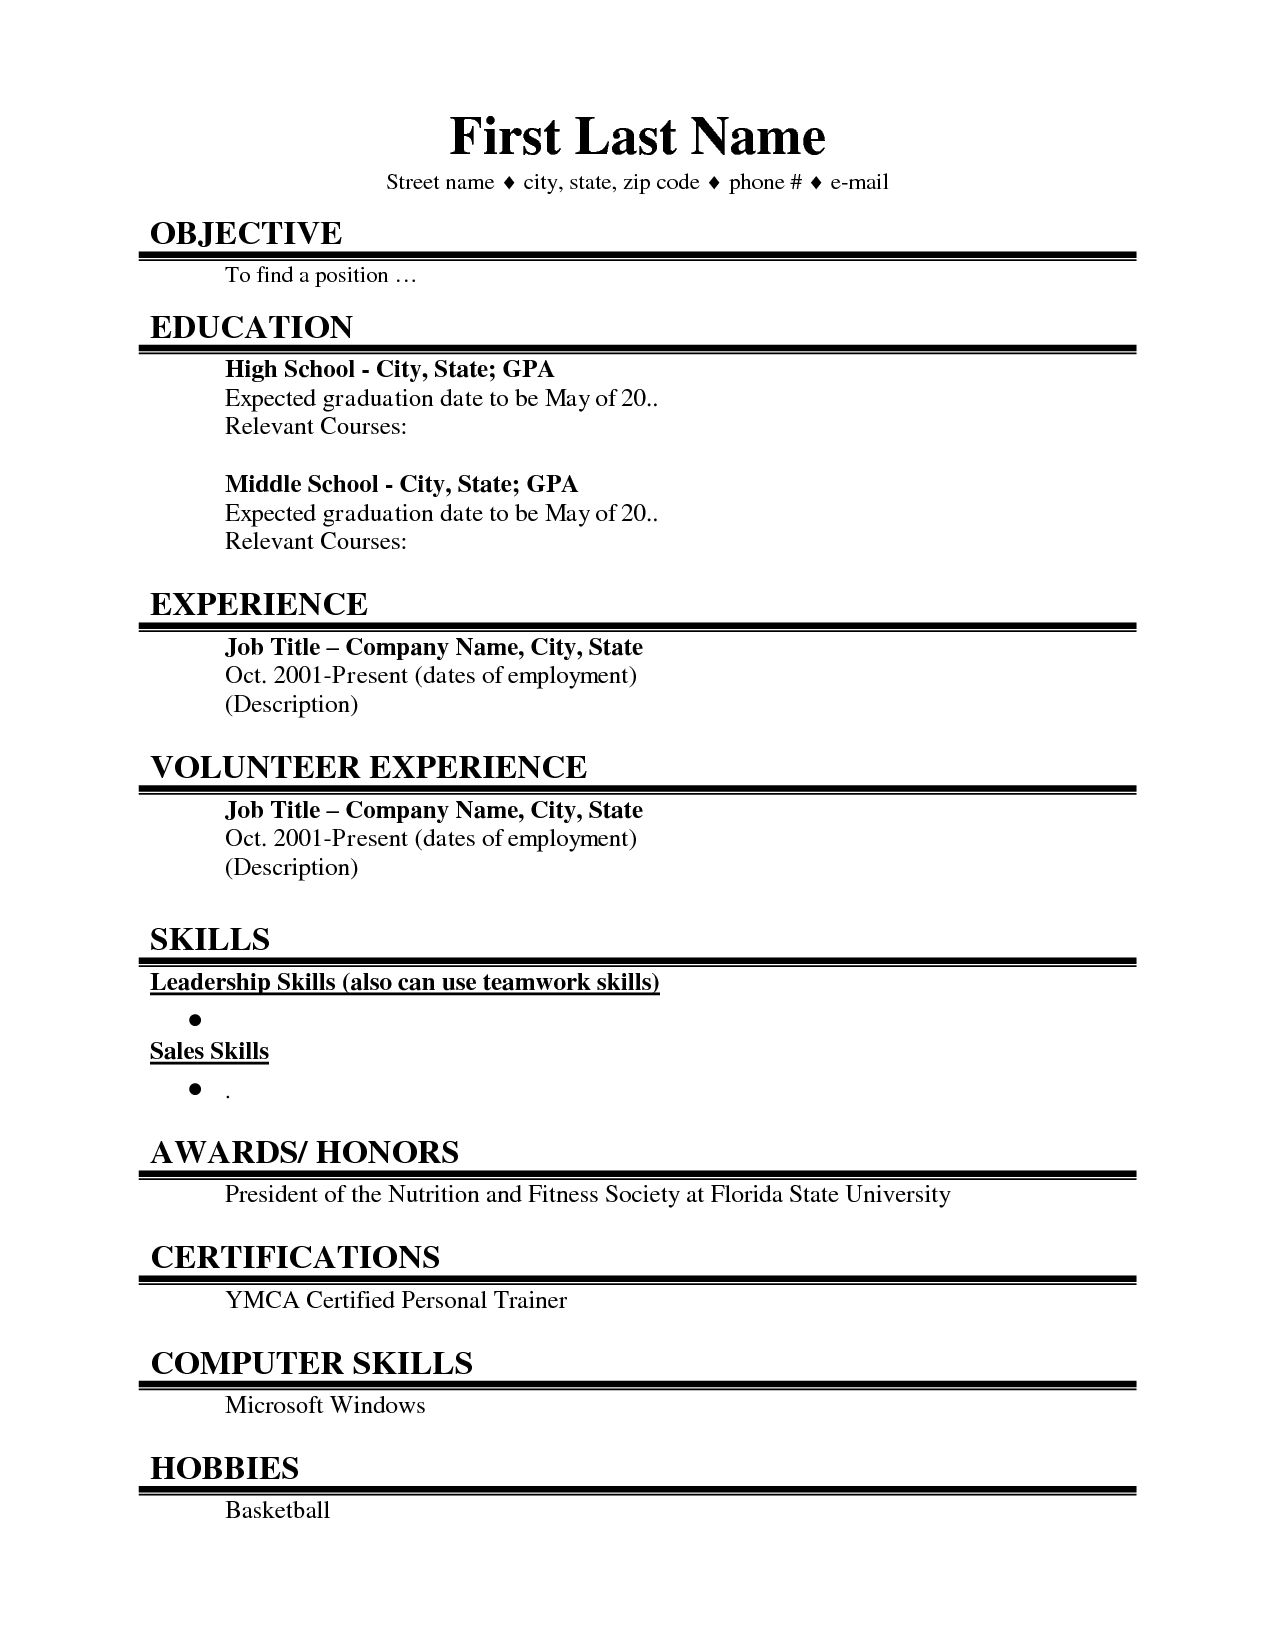 How To Write A Resume For A First Job First Job Resume Google Search Resume Pinterest